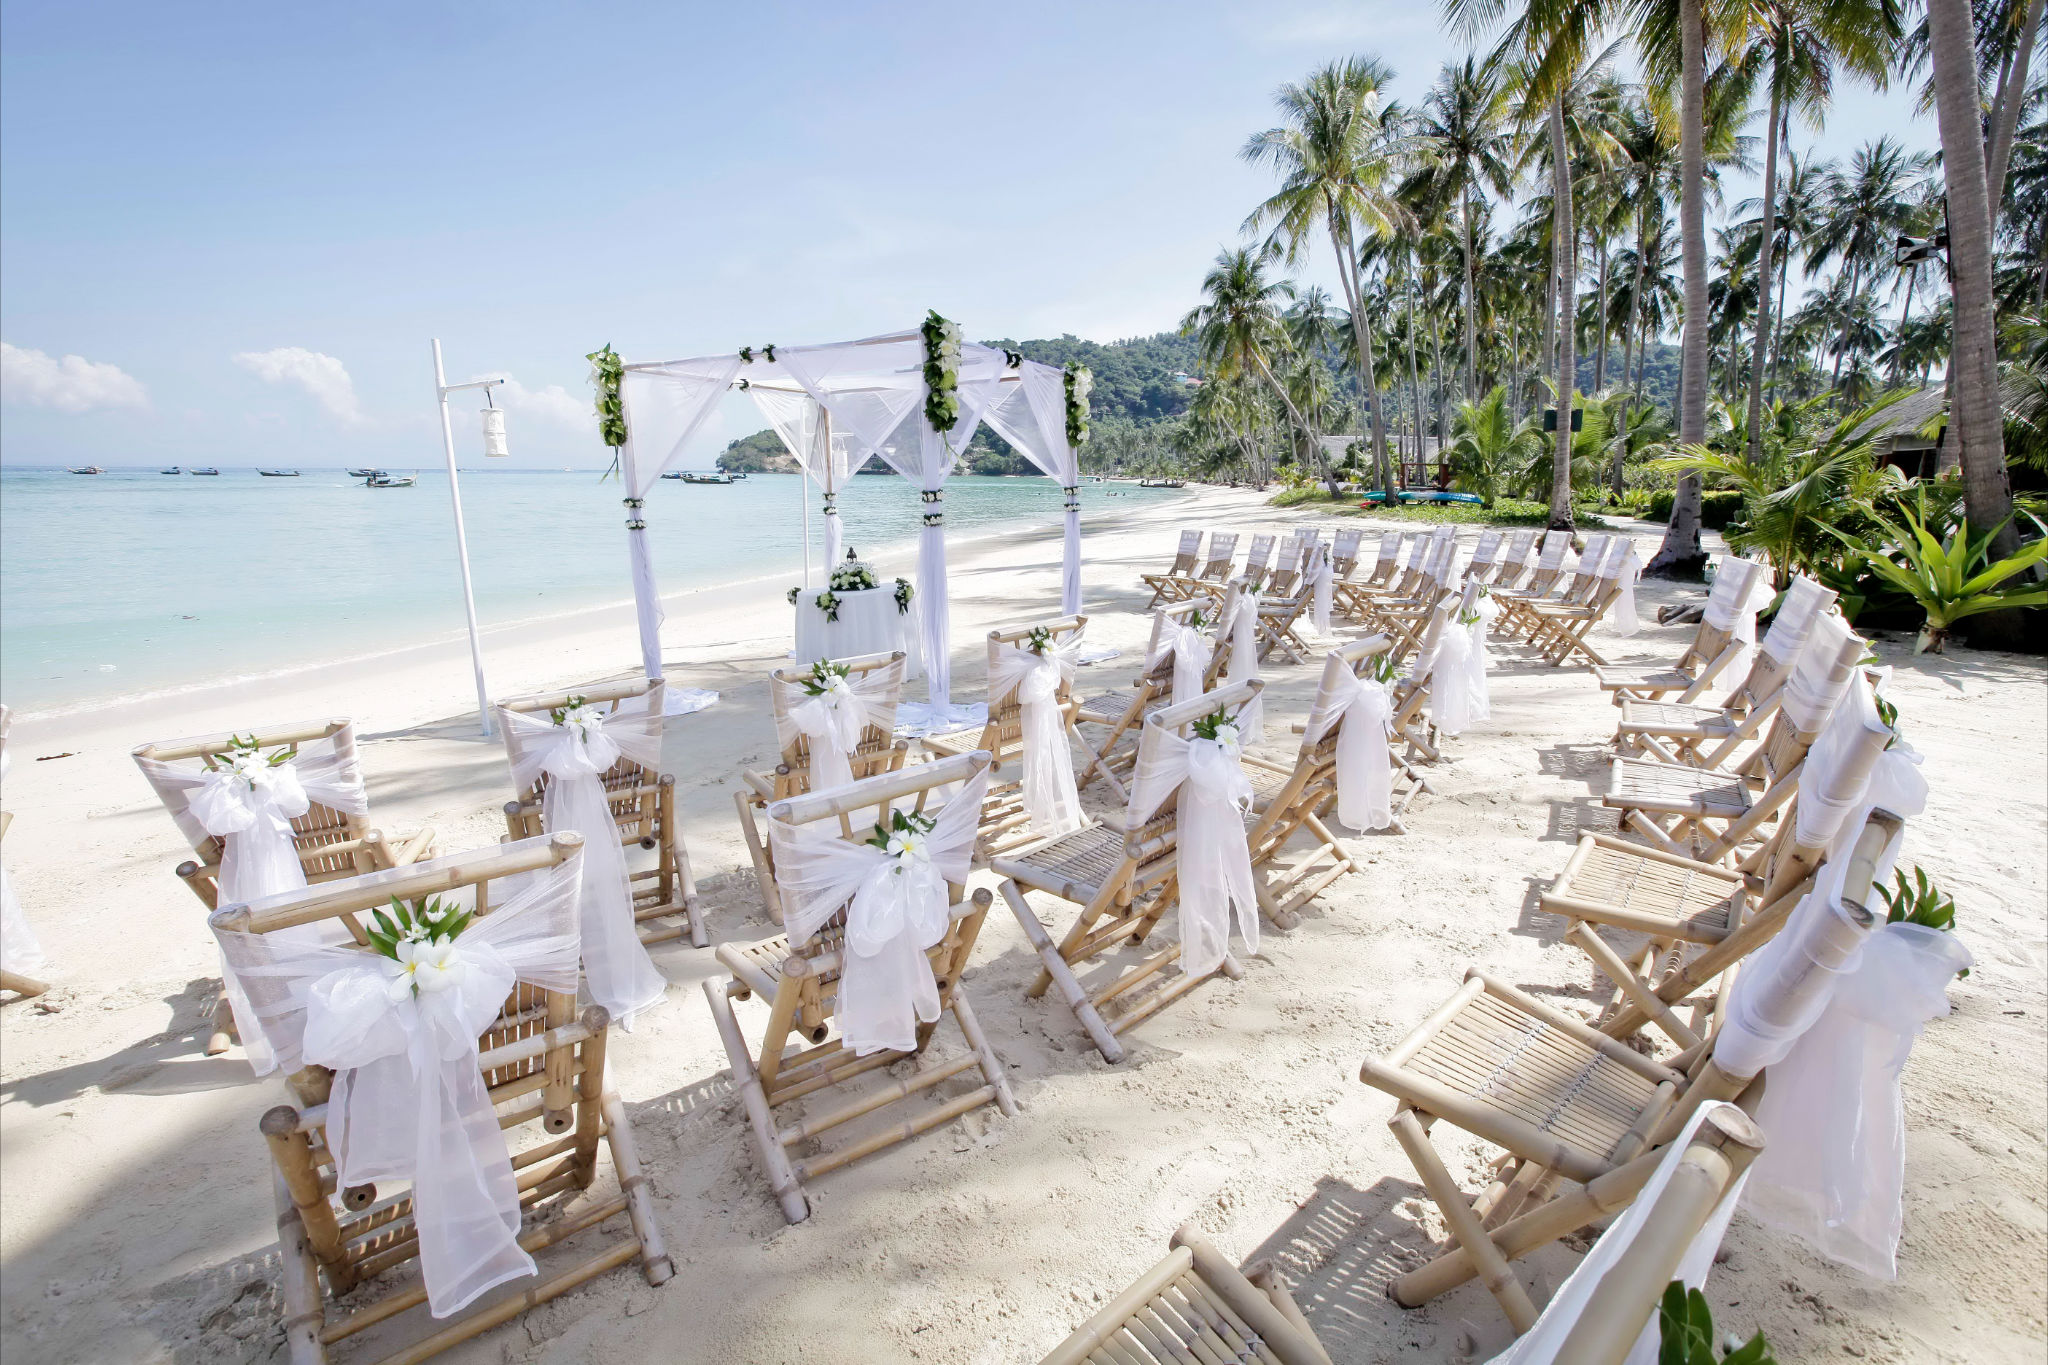 Creative events asia thailands best resorts for weddings in 2014 for solutioingenieria Choice Image